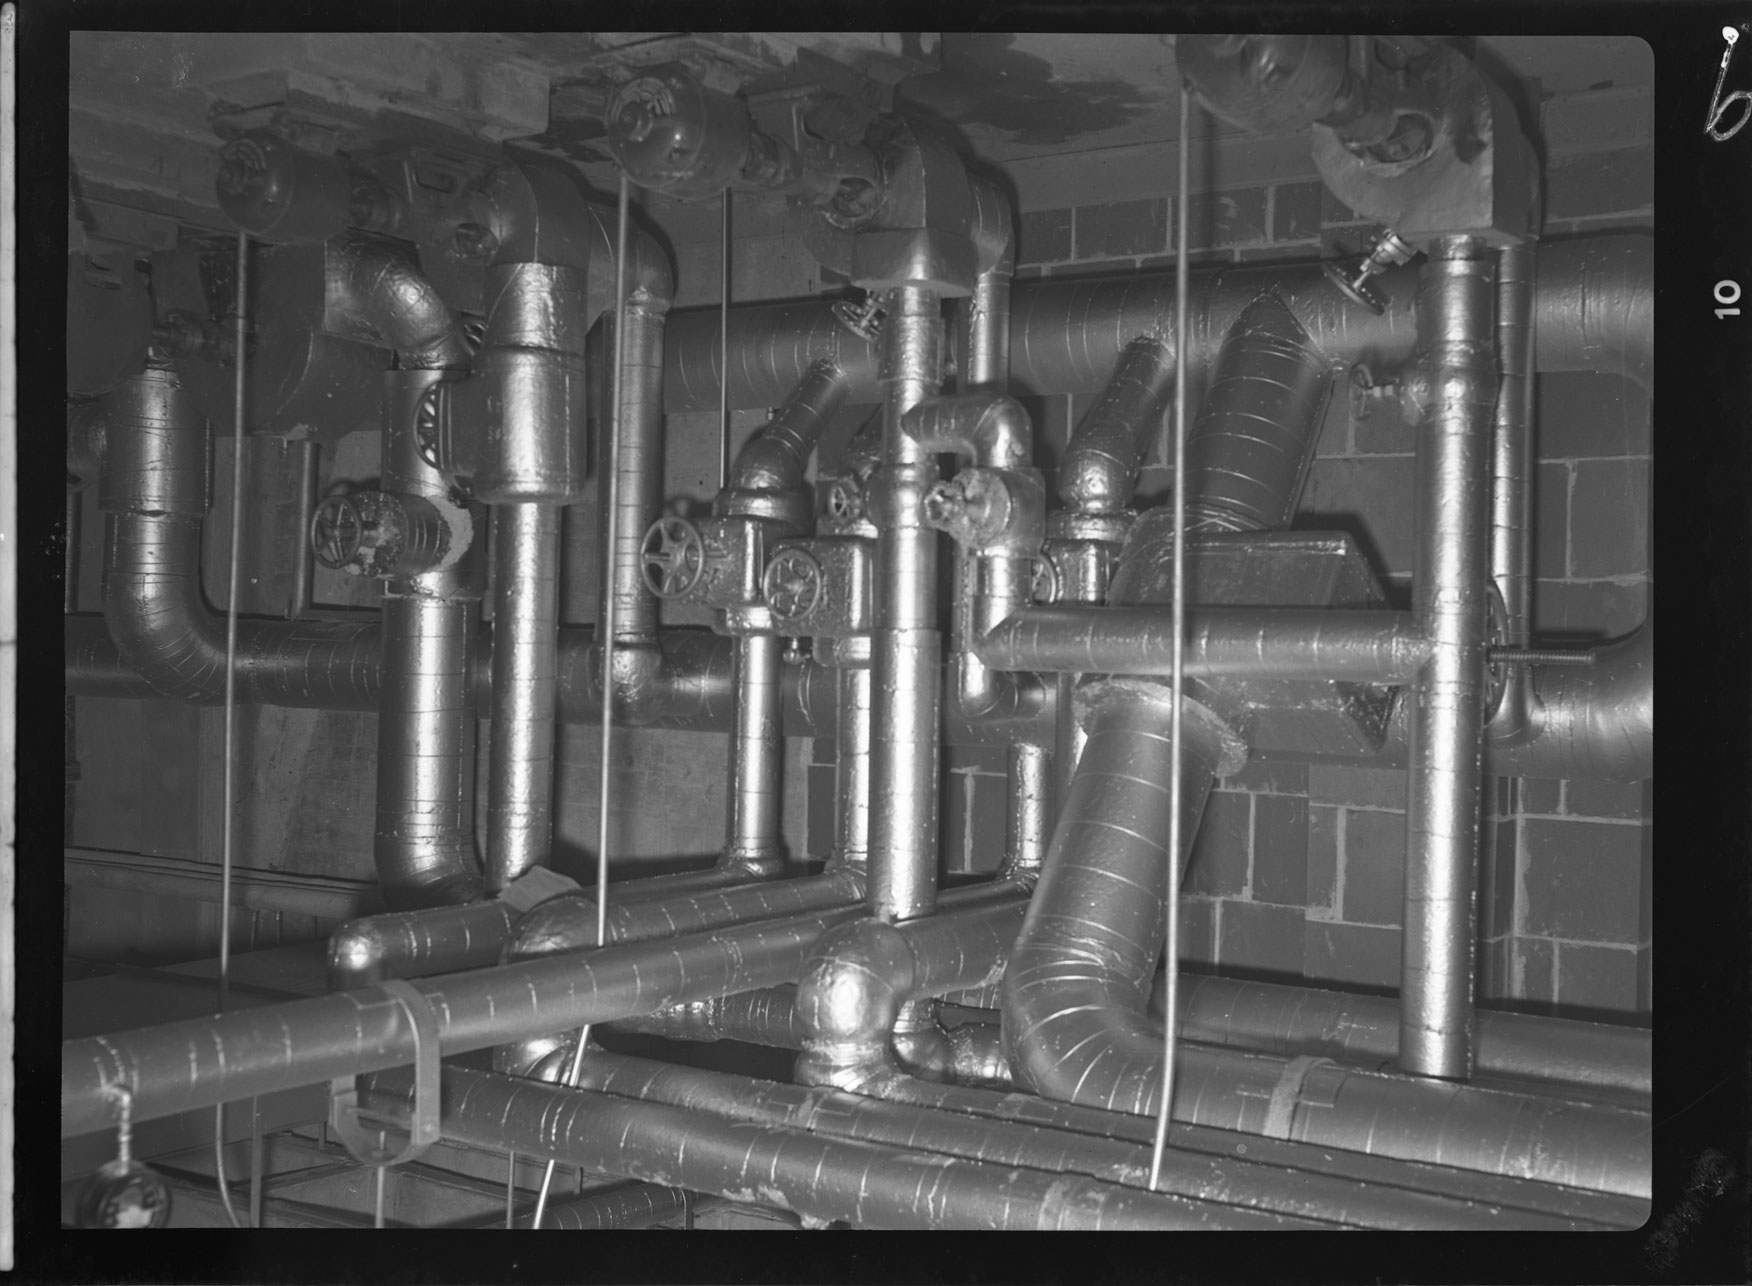 Pipes at Naval Hospital by Thurston & Sons, Norfolk, Va